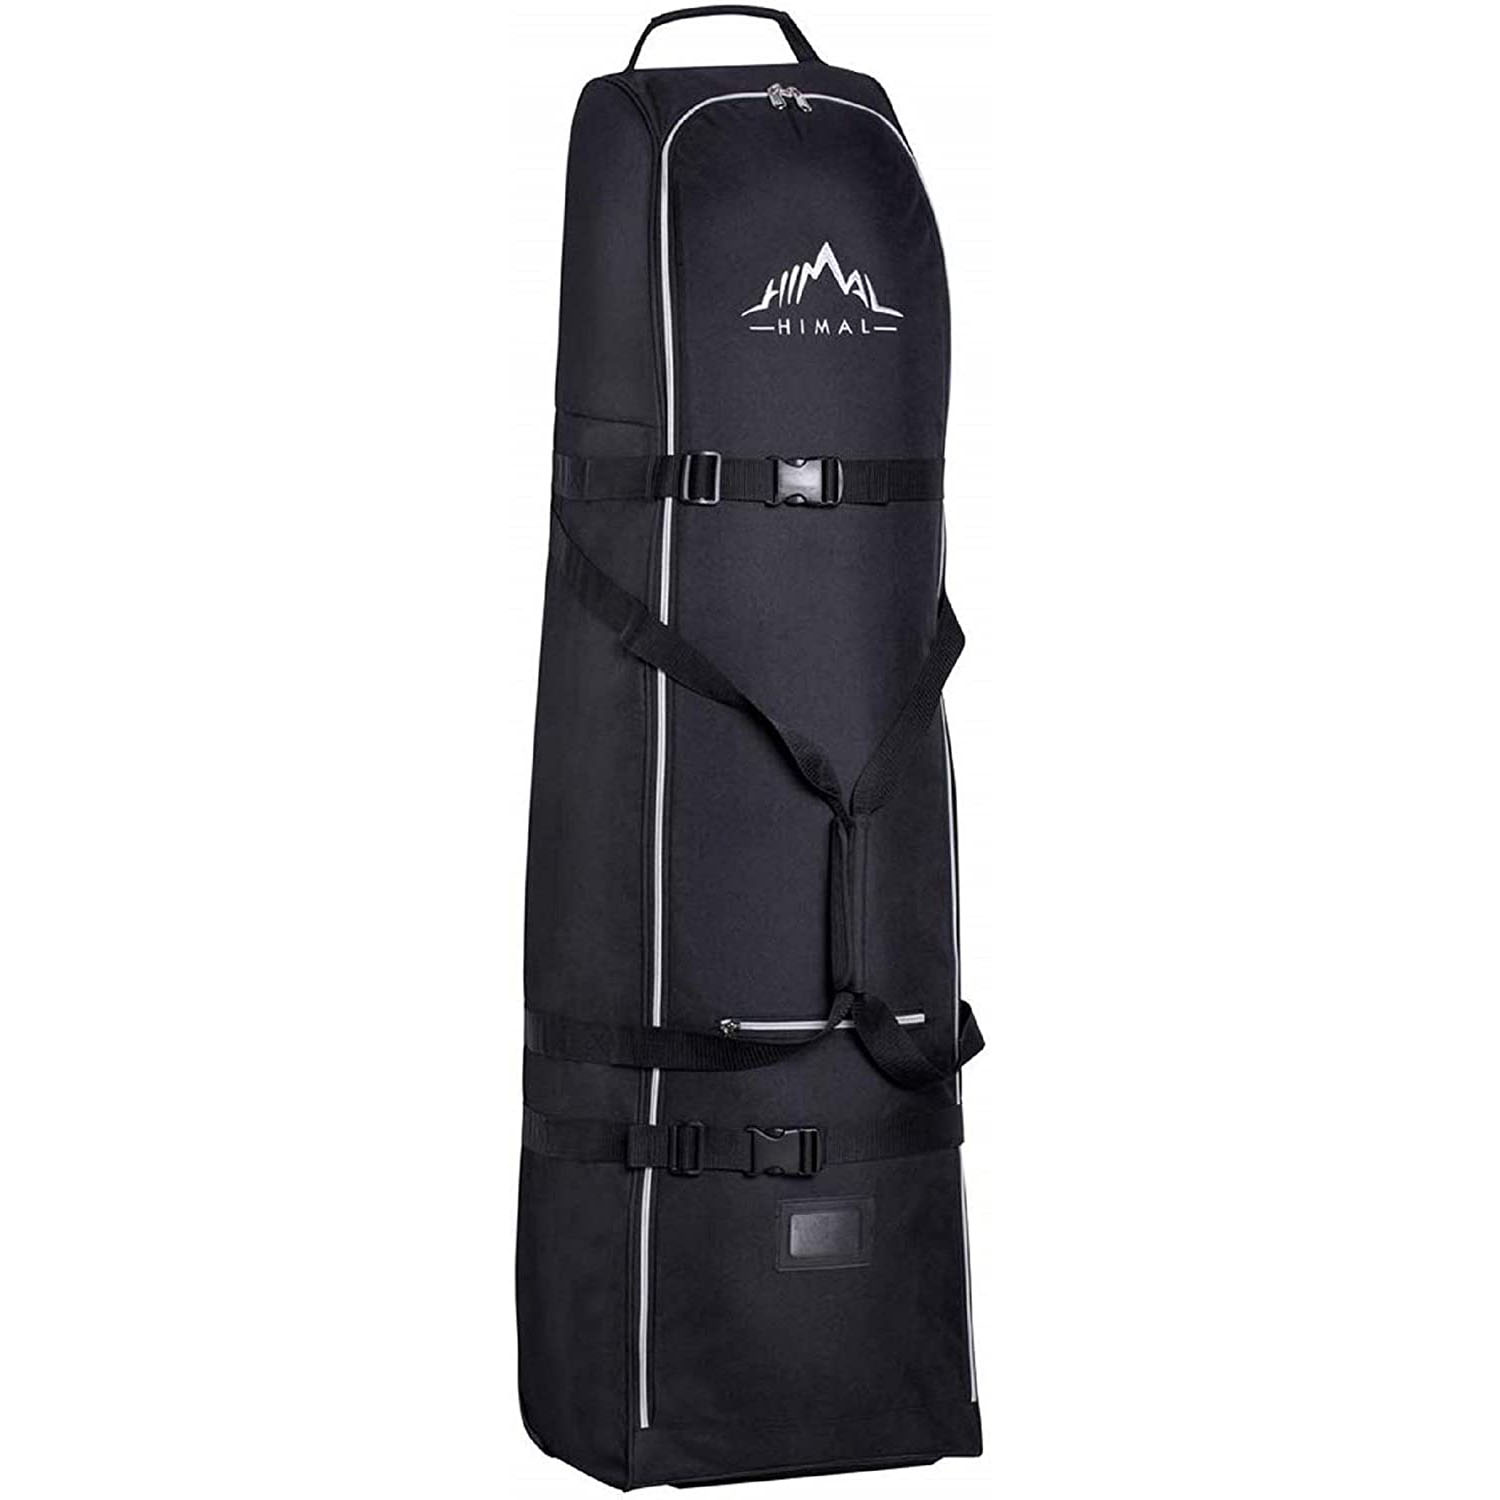 Himal Soft-Sided Golf Travel Bag